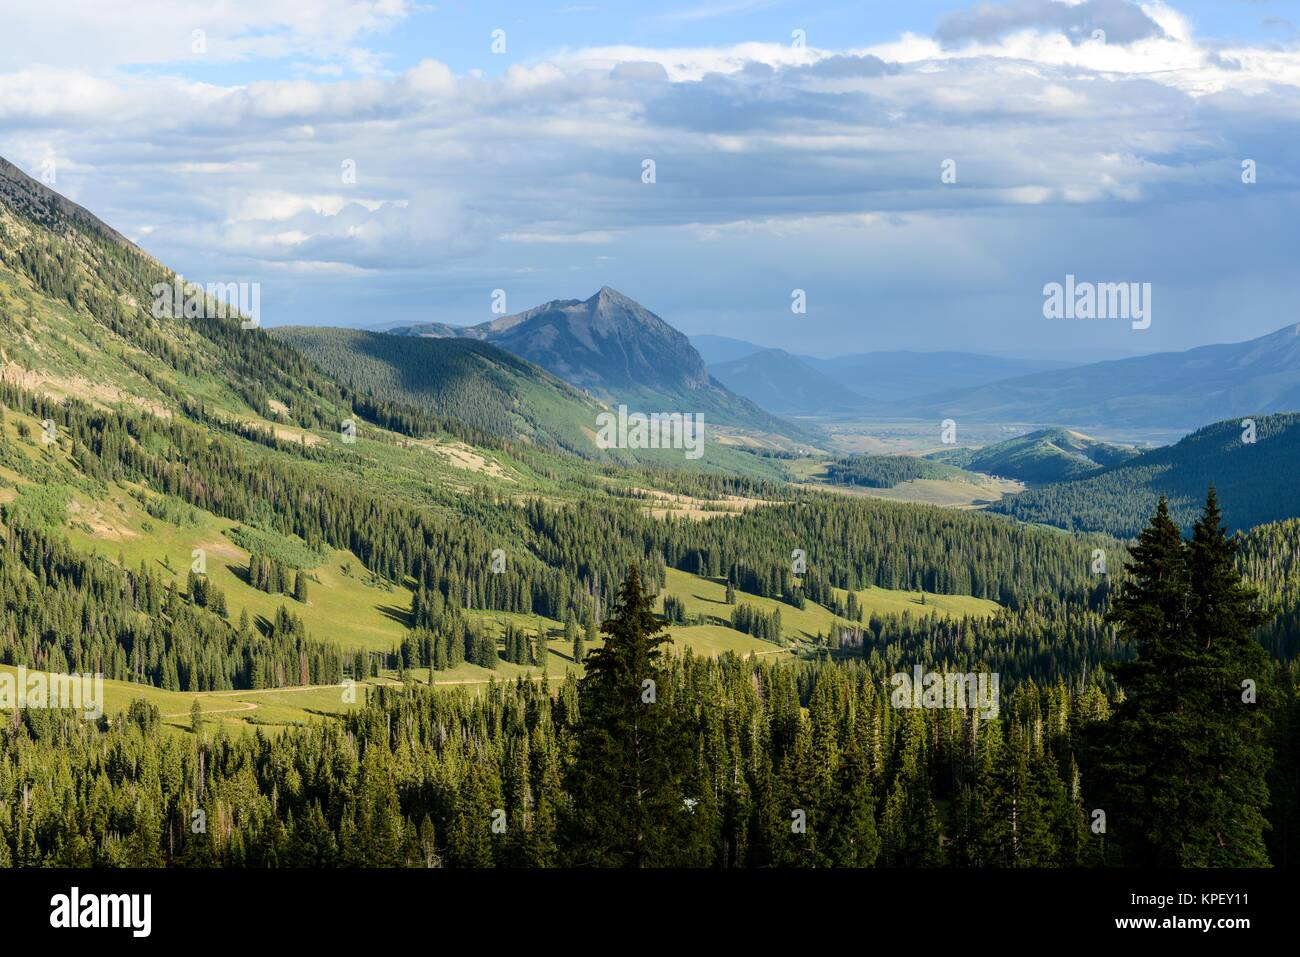 Mount Crested Butte - Summer cloud over Mount Crested Butte (12,162 ft), Colorado, USA. - Stock Image